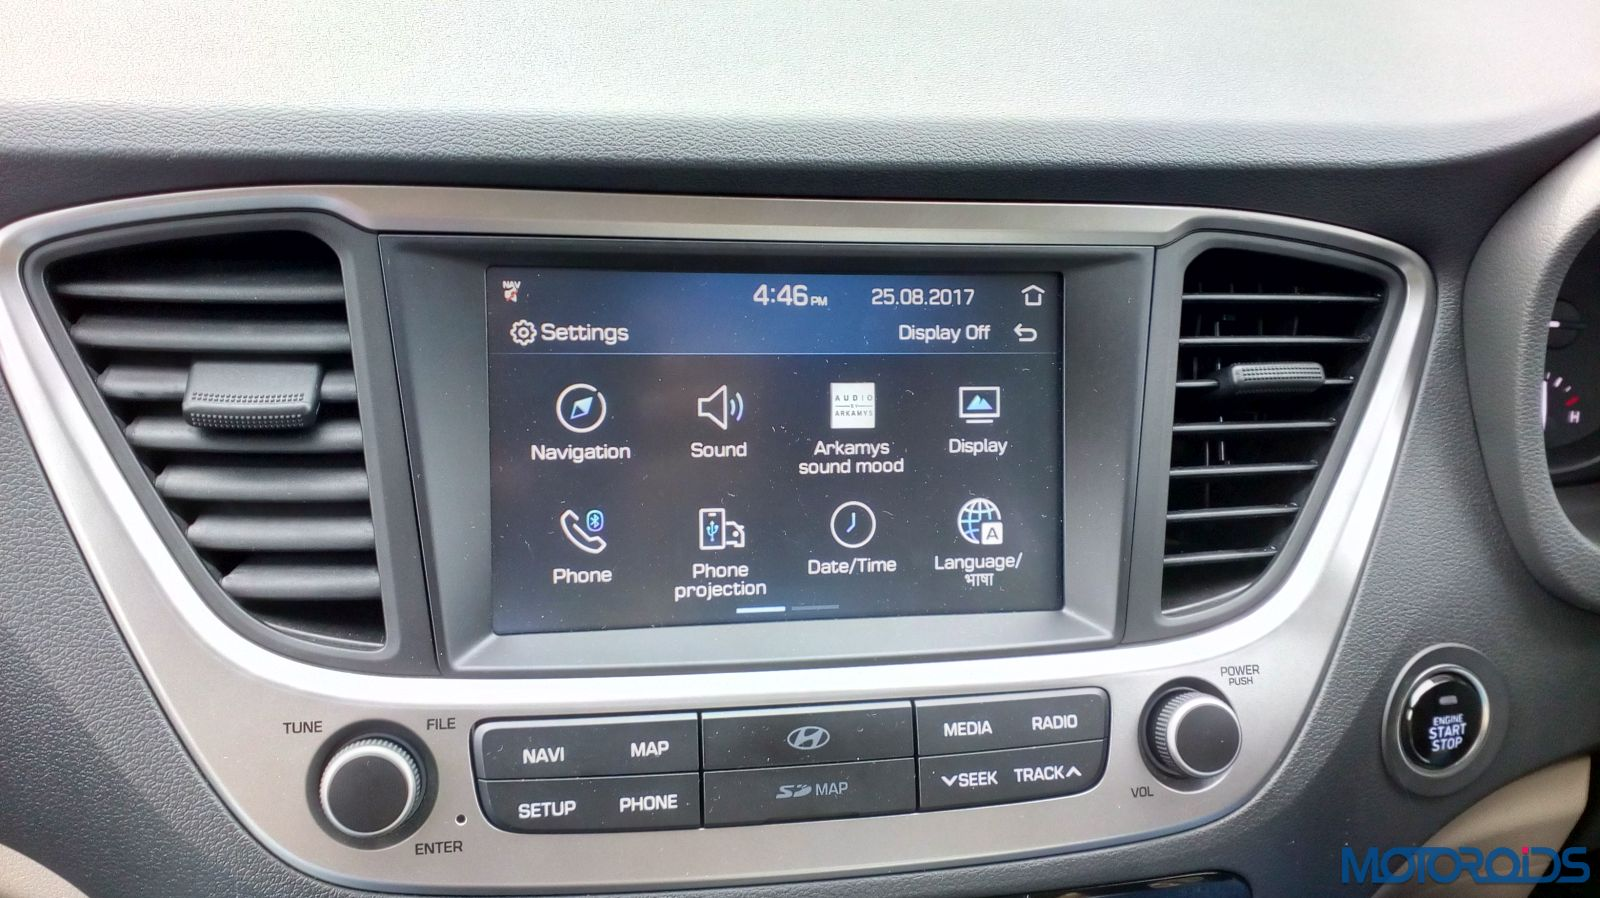 August 28, 2017-New-2017-Next-gen-Hyundai-Verna-infotainment-screen-26.jpg